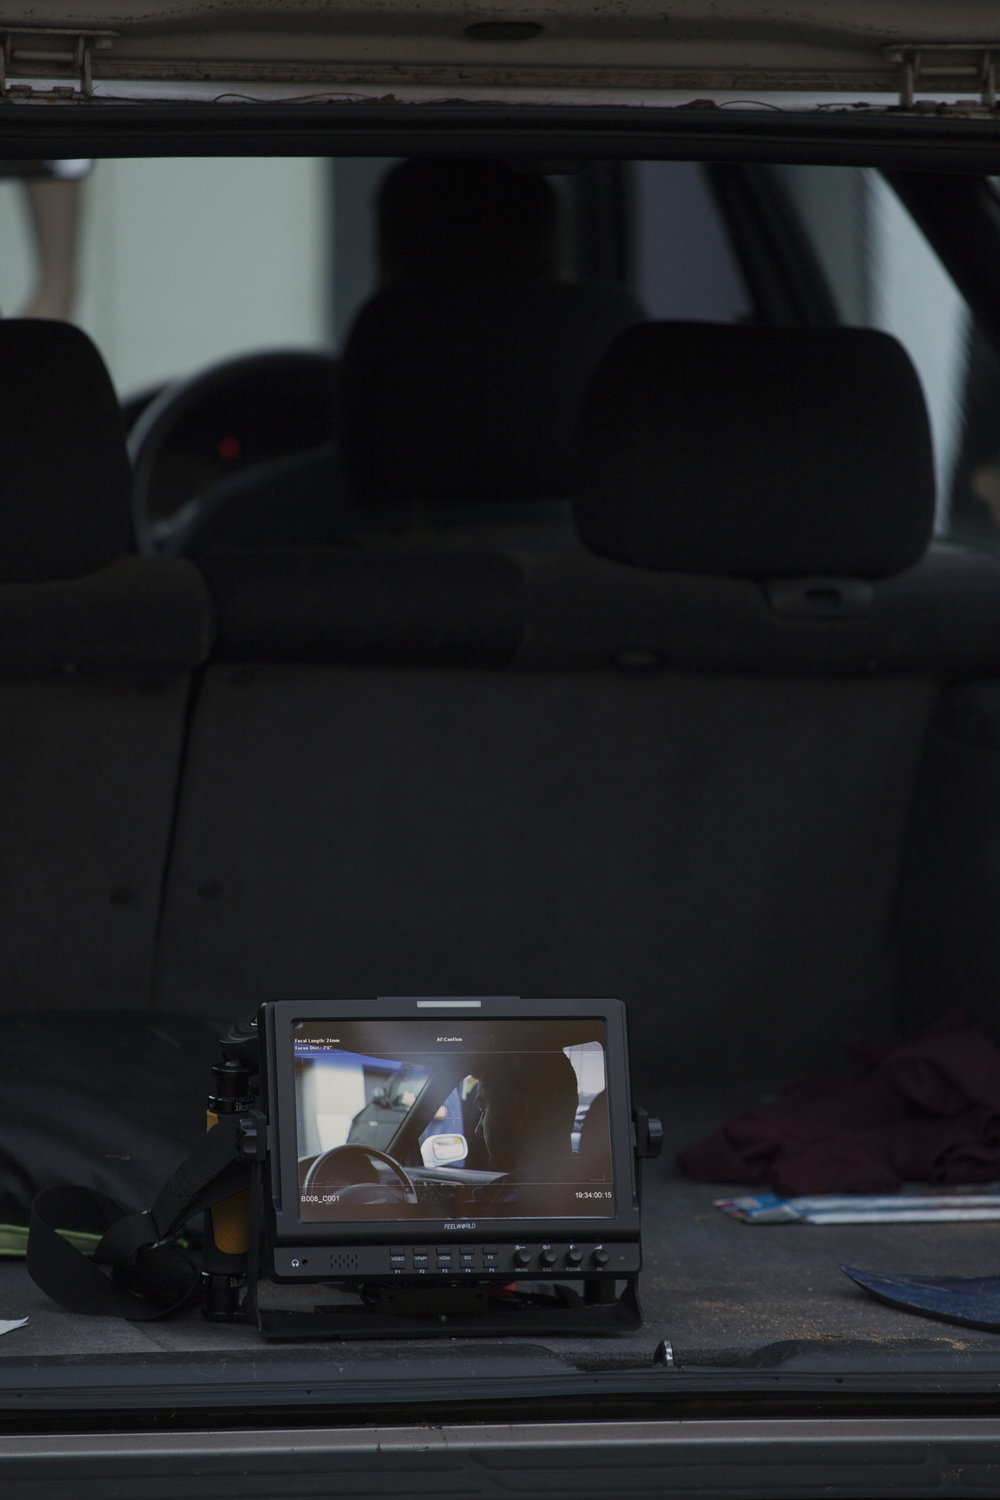 Our director Angus stayed close to the action by keeping his monitor close, allowing crucial decisions to be made during the film process. This picture is in the back of a car where the camera operator is just out of shot to the left.